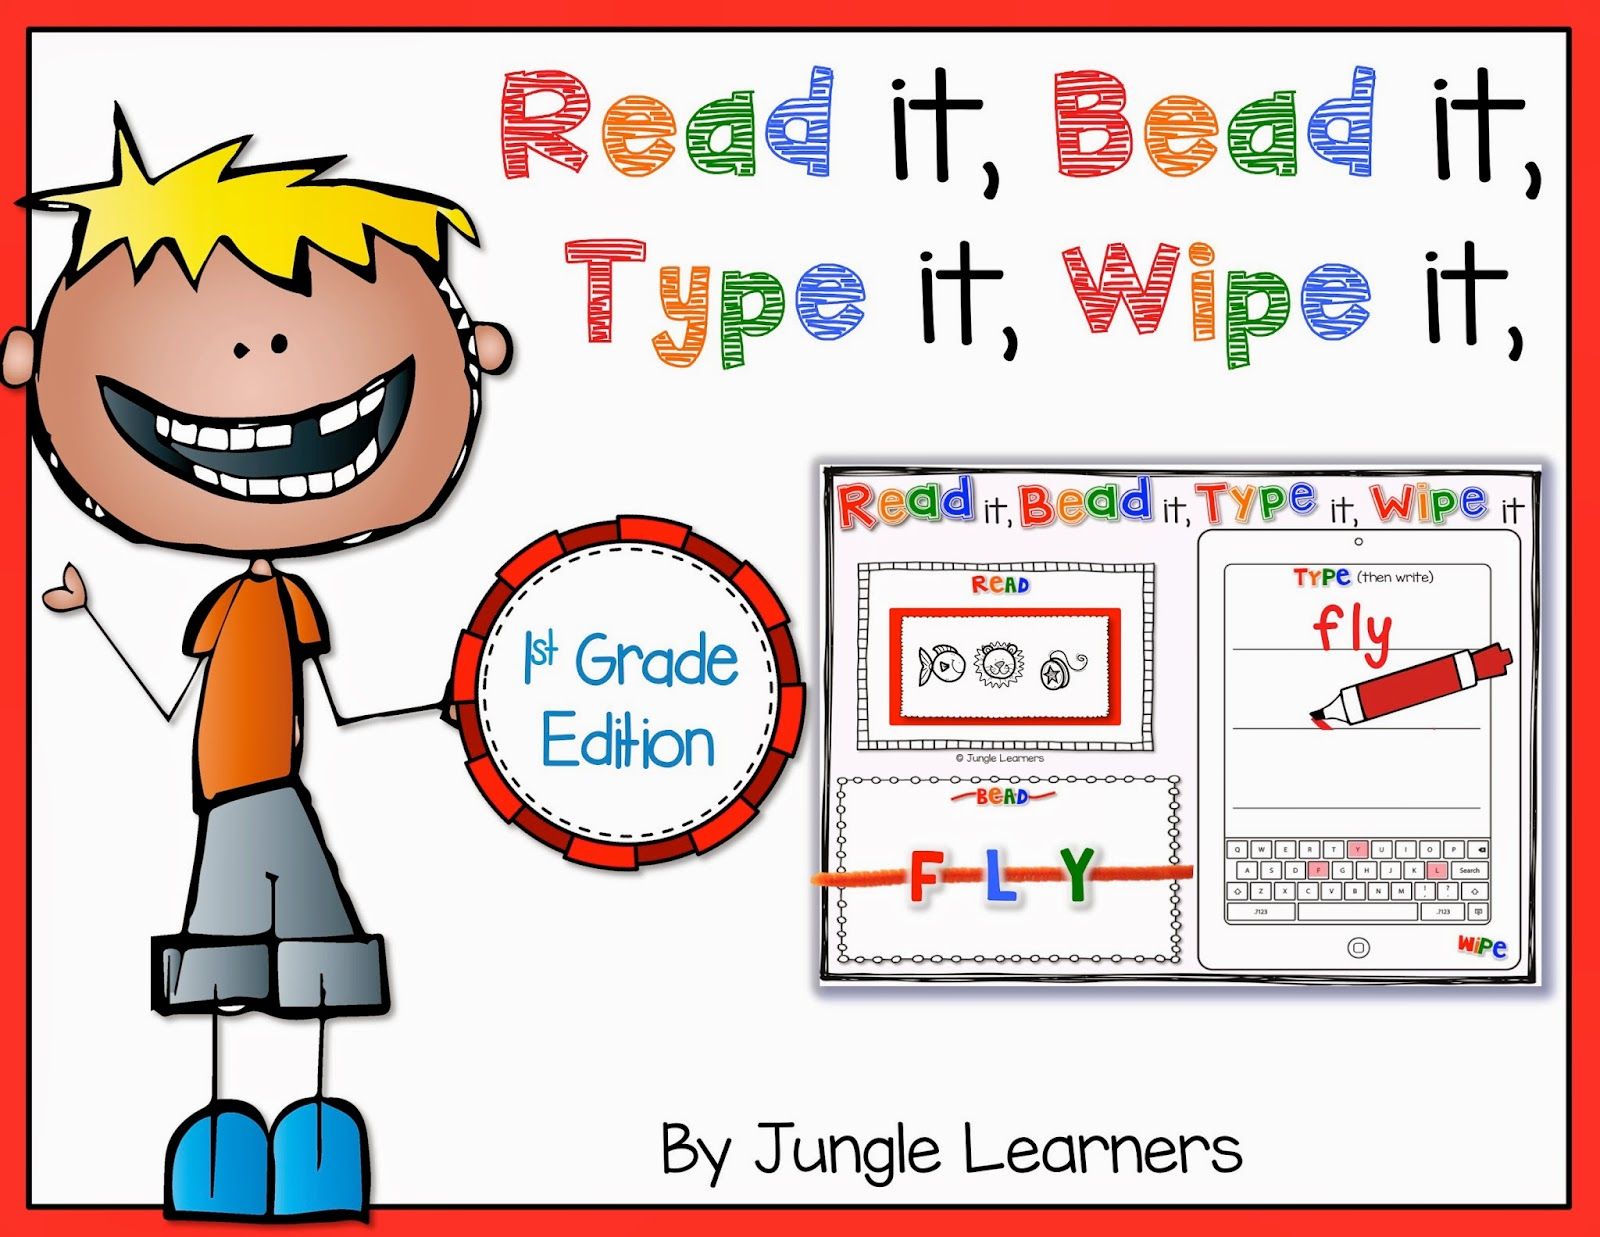 Read it, Bead it, Type it, Wipe it [1st Grade Edition]